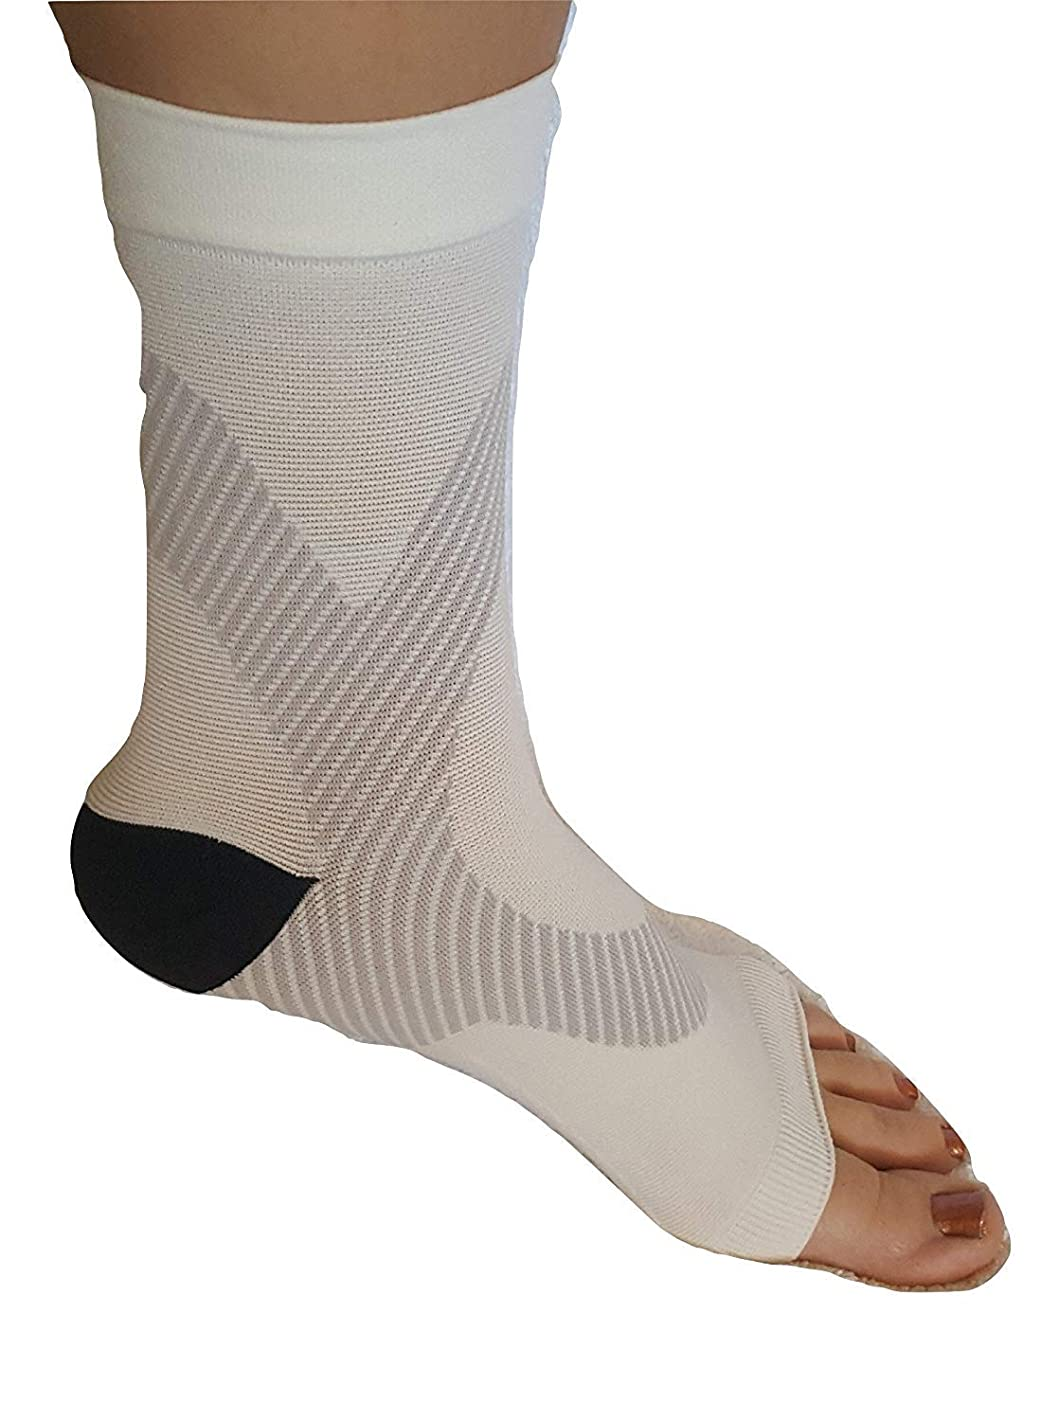 Actual Labs Plantar Fasciitis Compression Sleeves (1 pair) Better than night splints, shoe, insoles, orthotics, braces, tendon, foot, heel spur, and ankle pain relief for nurses, maternity, running,